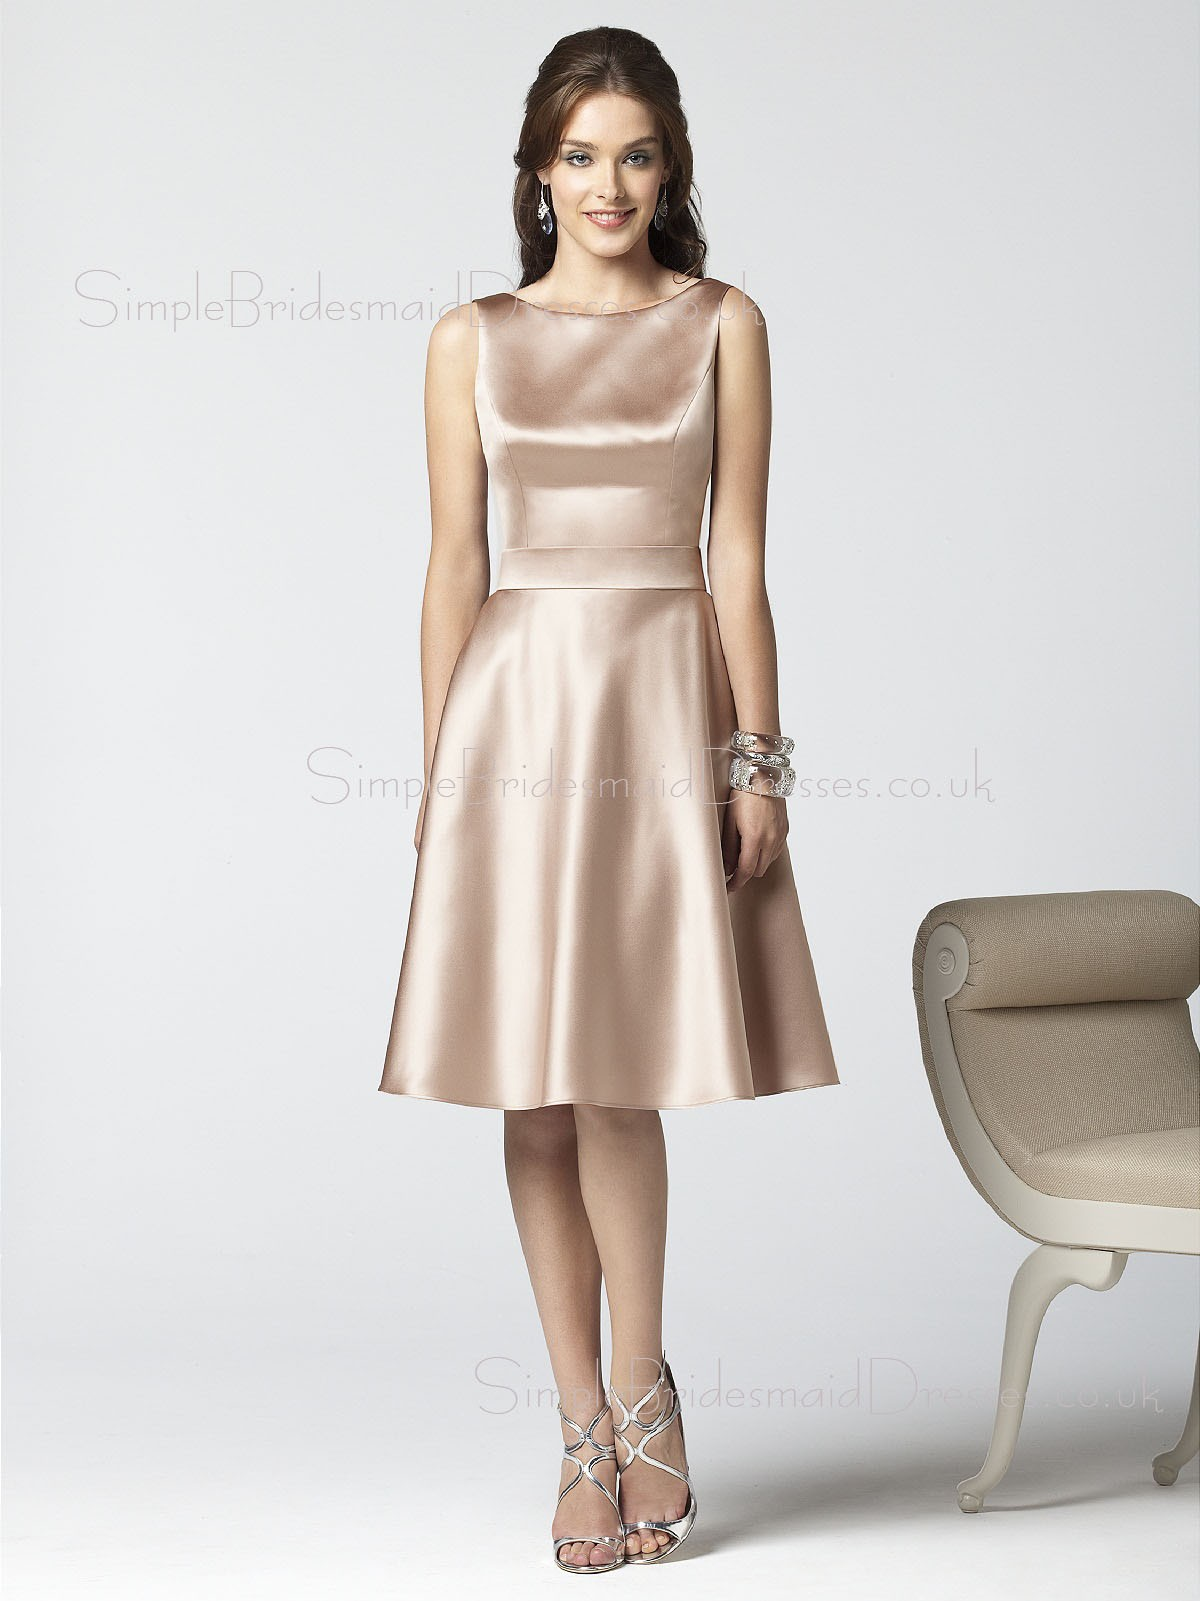 Champagne bridesmaid dresses uk cheap champagne bridesmaid sleeveless knee length a line champagne drapedruffles bridesmaid dress ombrellifo Choice Image